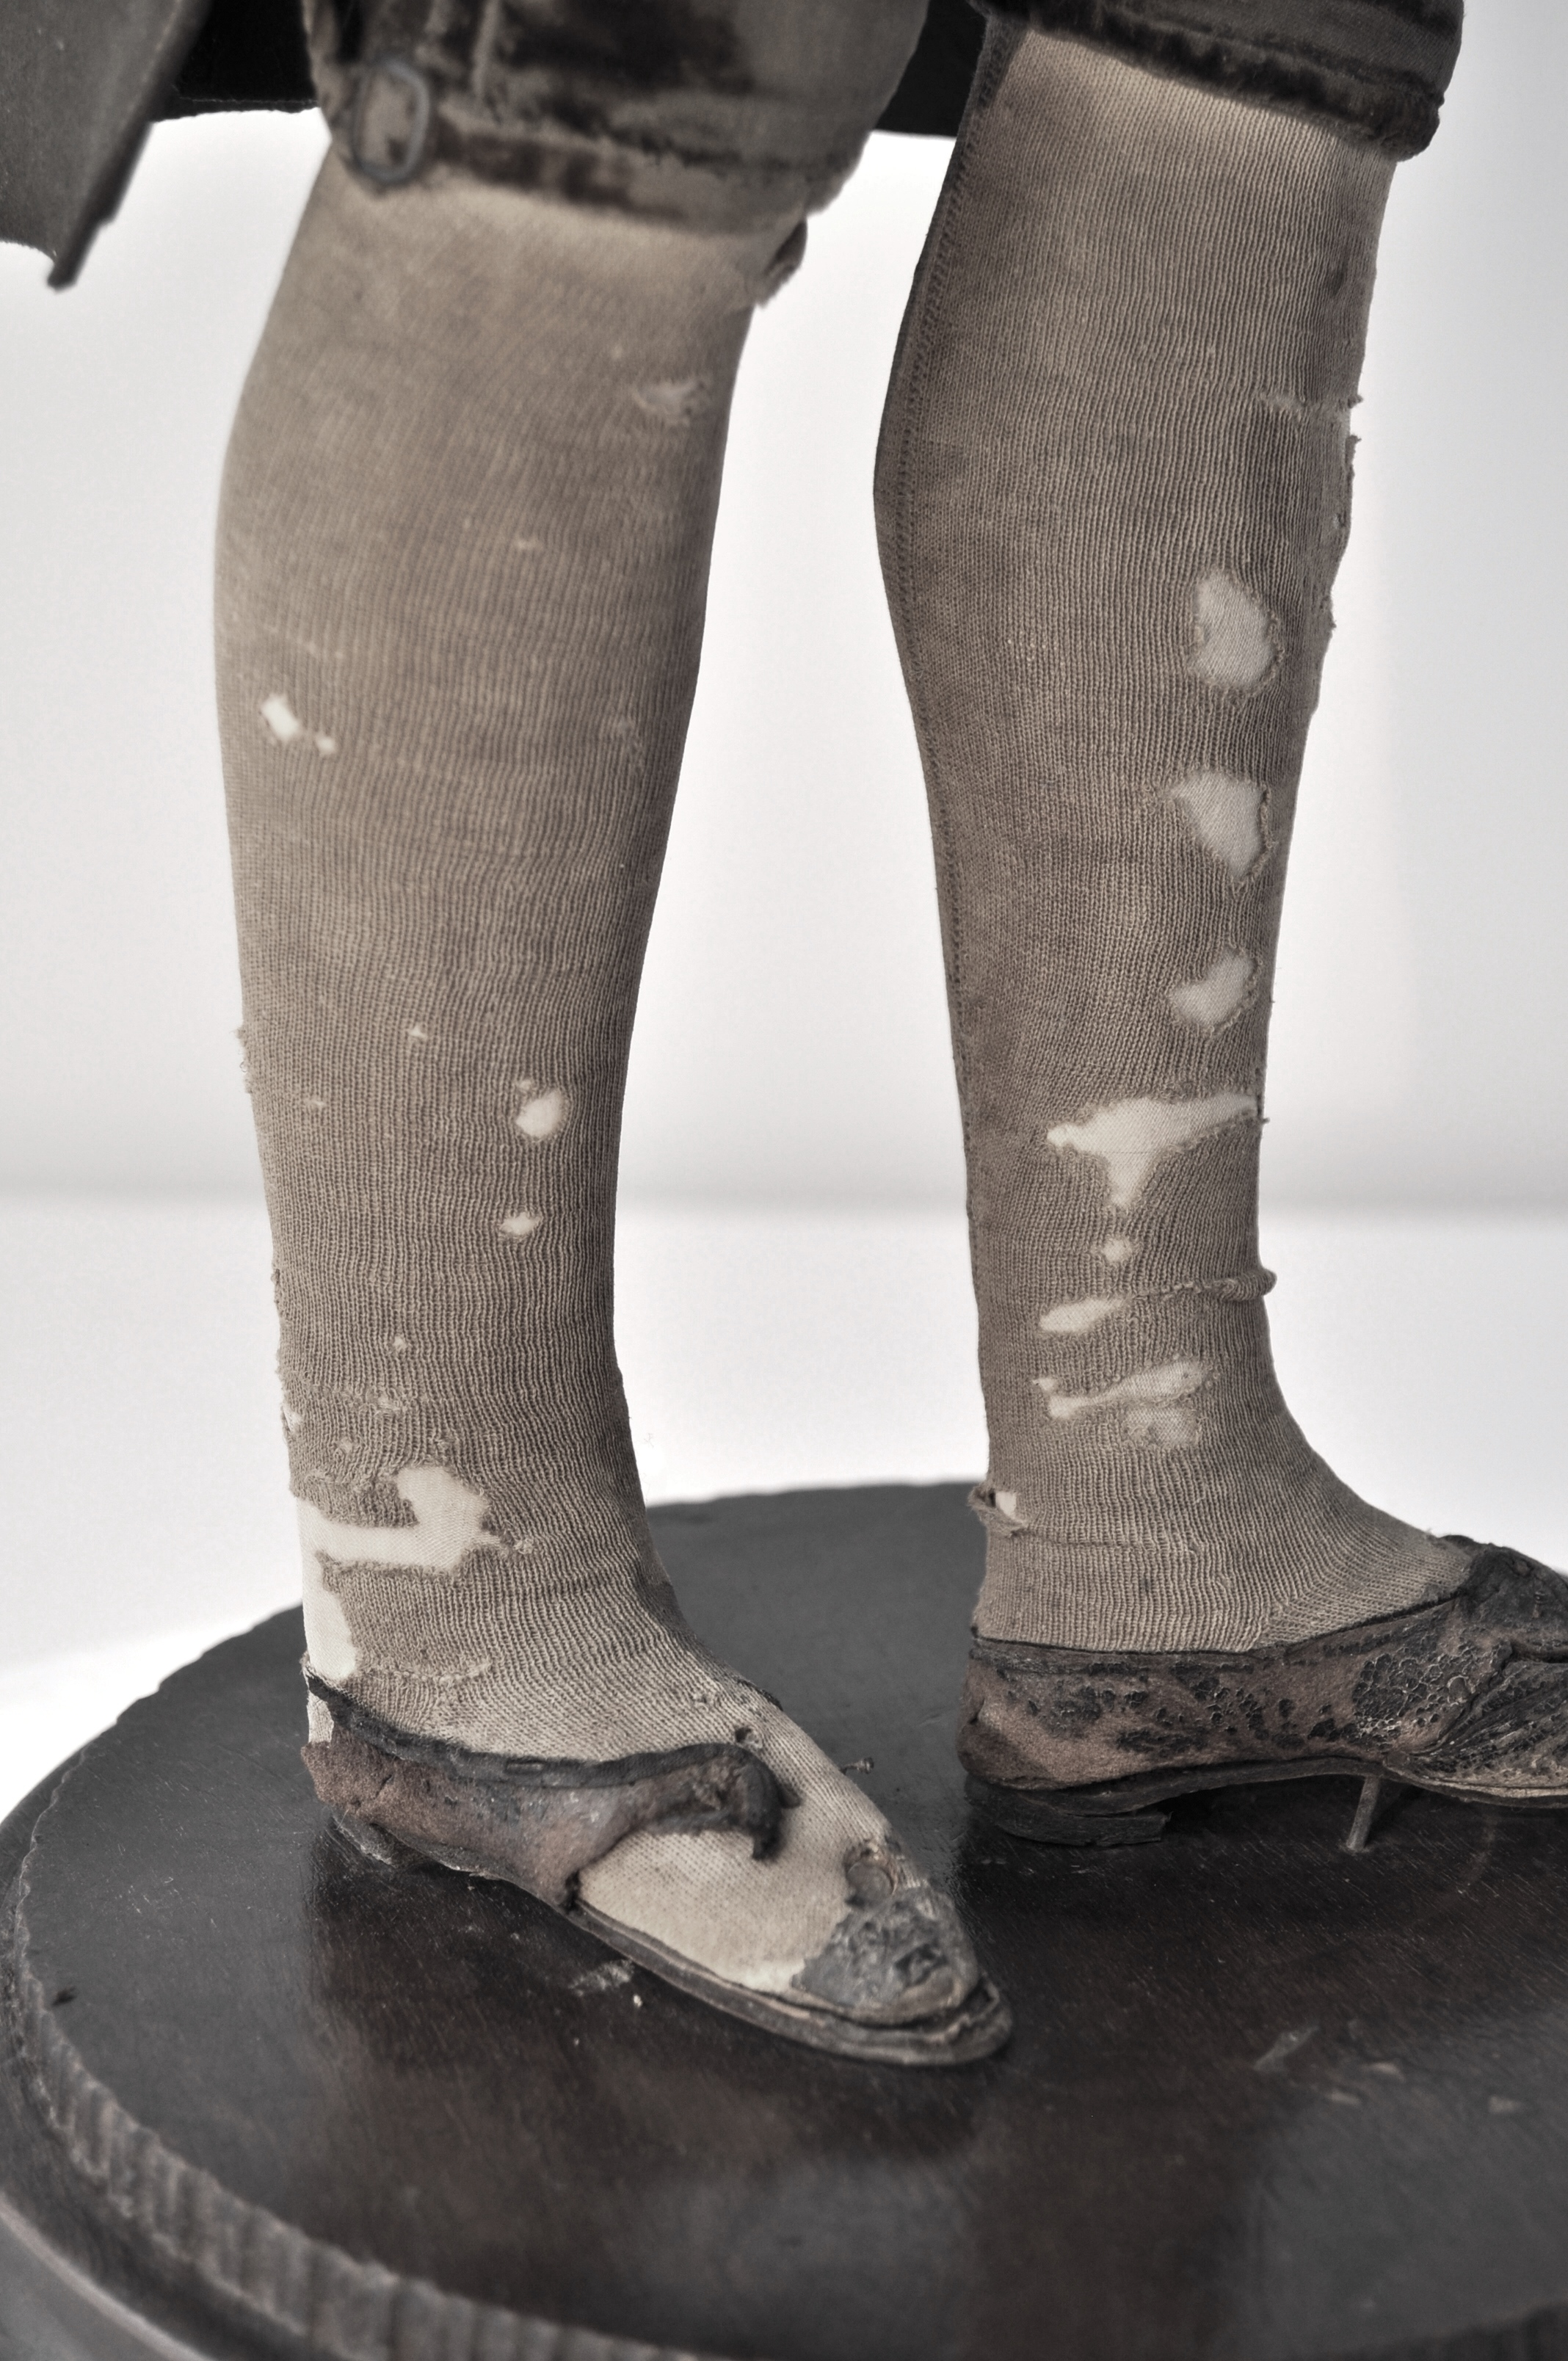 Detail of the holed silk stockings and fragmentary leather shoes, after conservation treatment